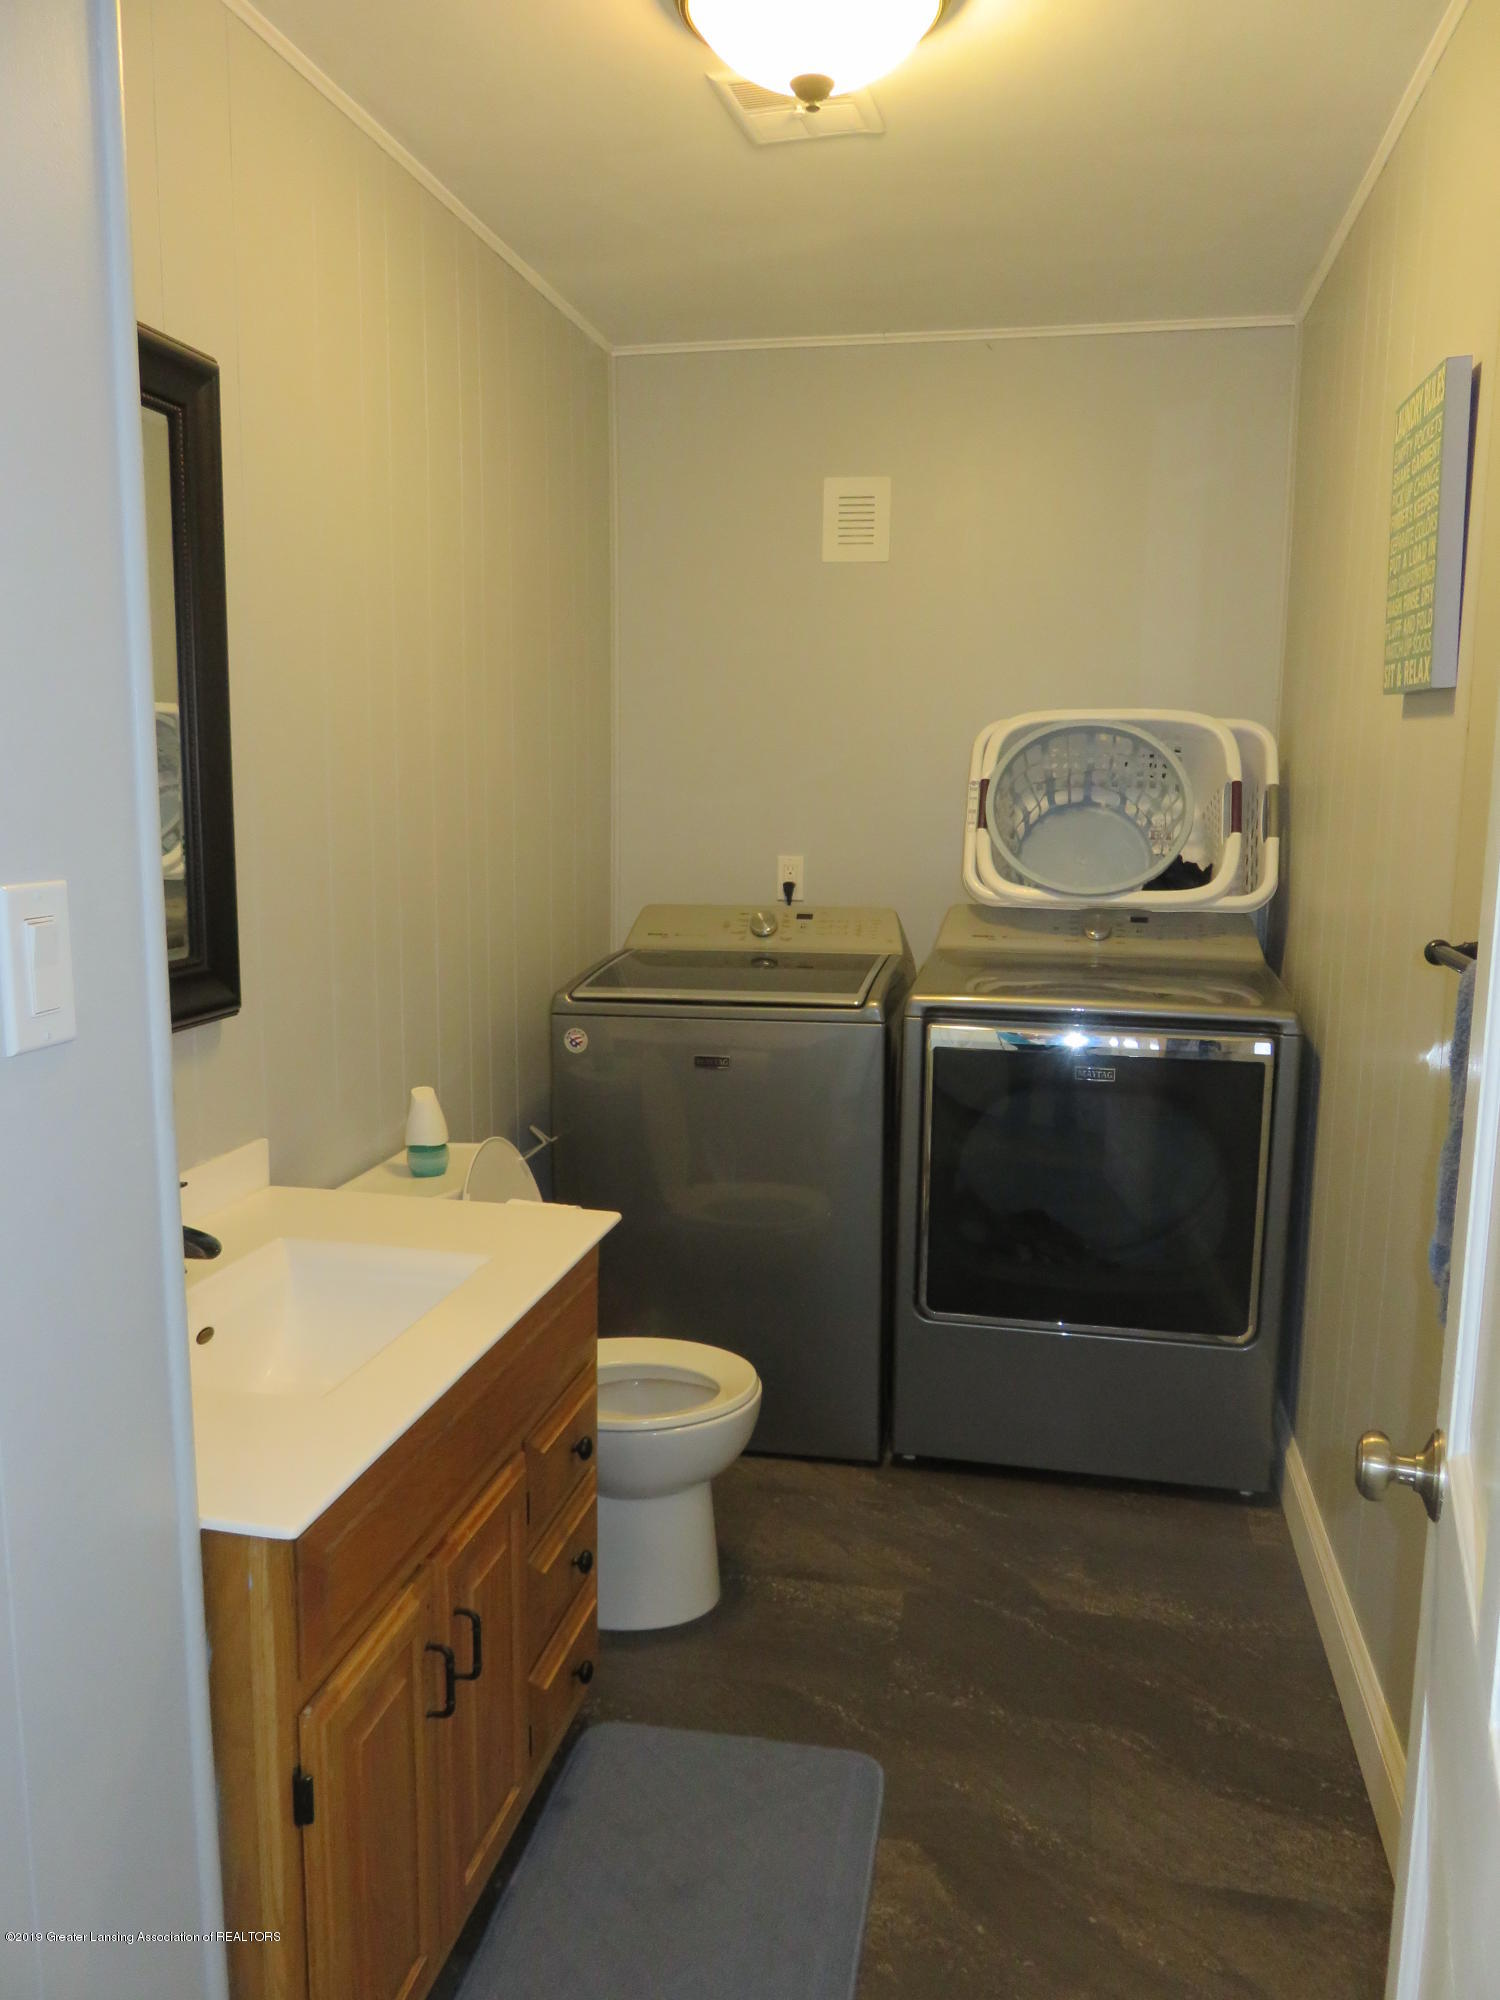 7123 E Mt Hope Hwy - 1st Floor 1.2 Bath & Laundry Room - 26